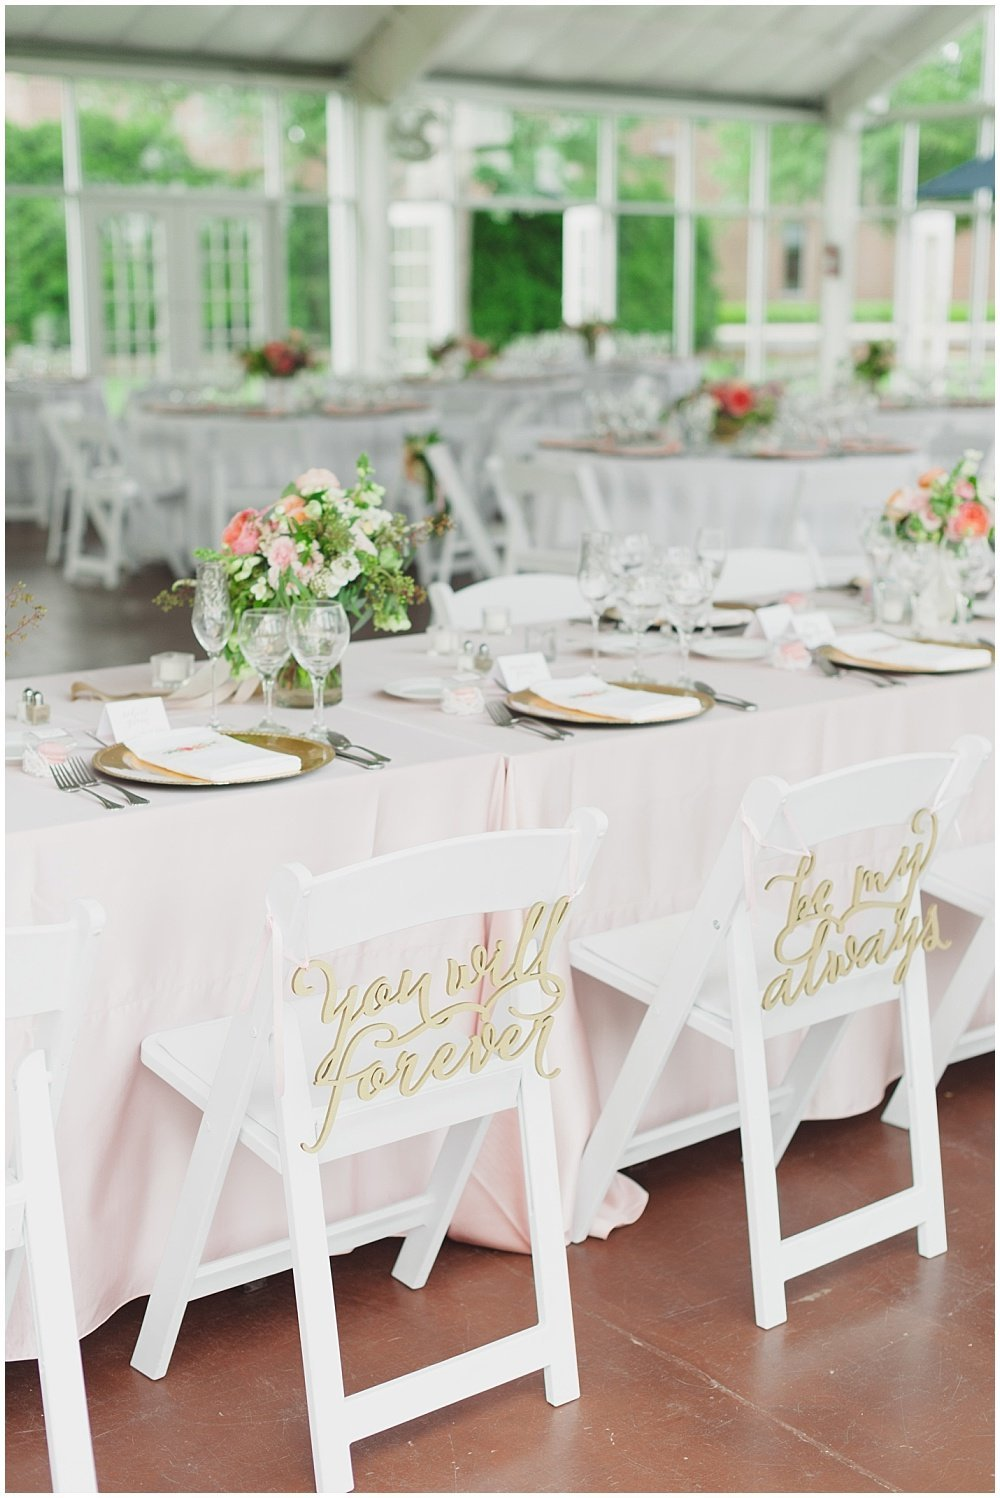 Ritz-Charles-Garden-Pavilion-Wedding-Stacy-Able-Photography-Jessica-Dum-Wedding-Coordination_photo_0034